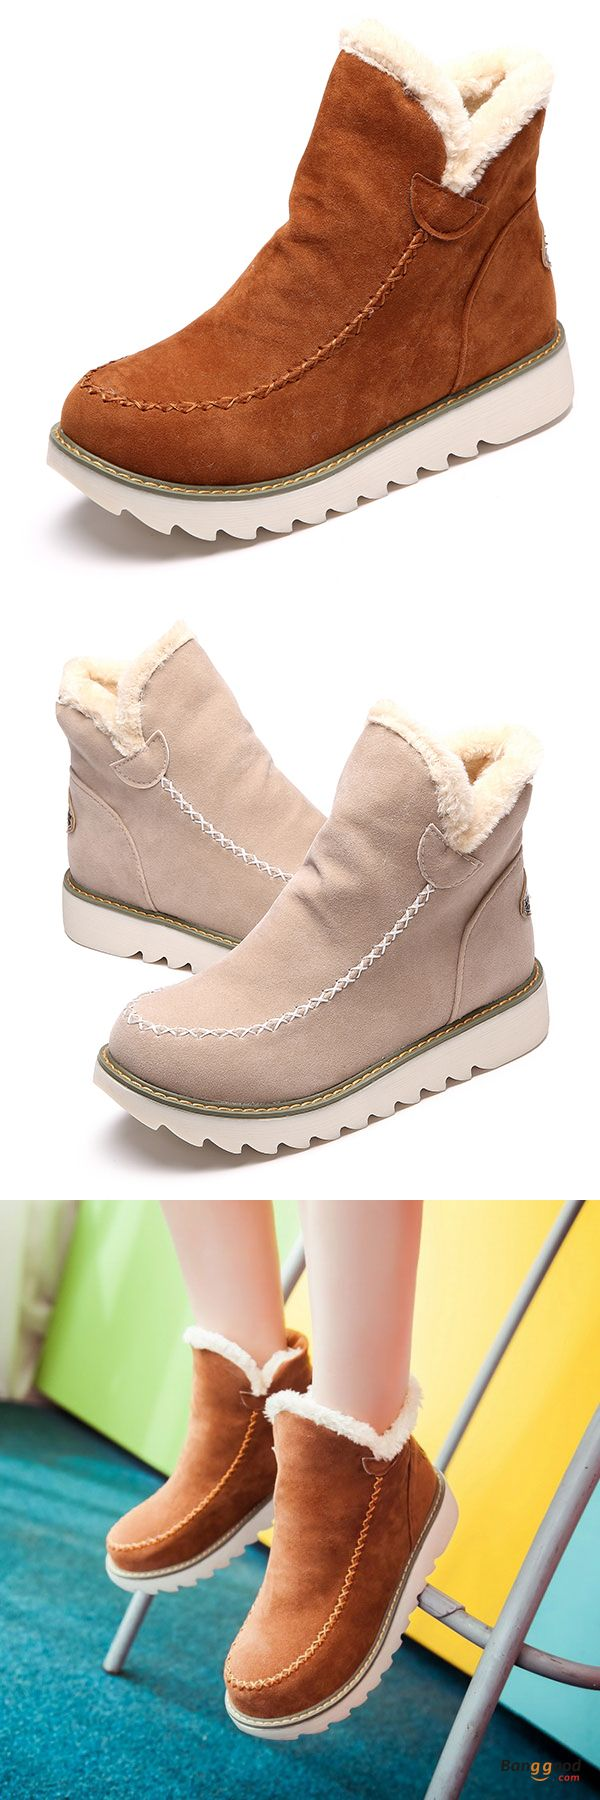 34 best Zapatos images on Pinterest   Woman shoes, Fashion shoes and ... 700c324f45